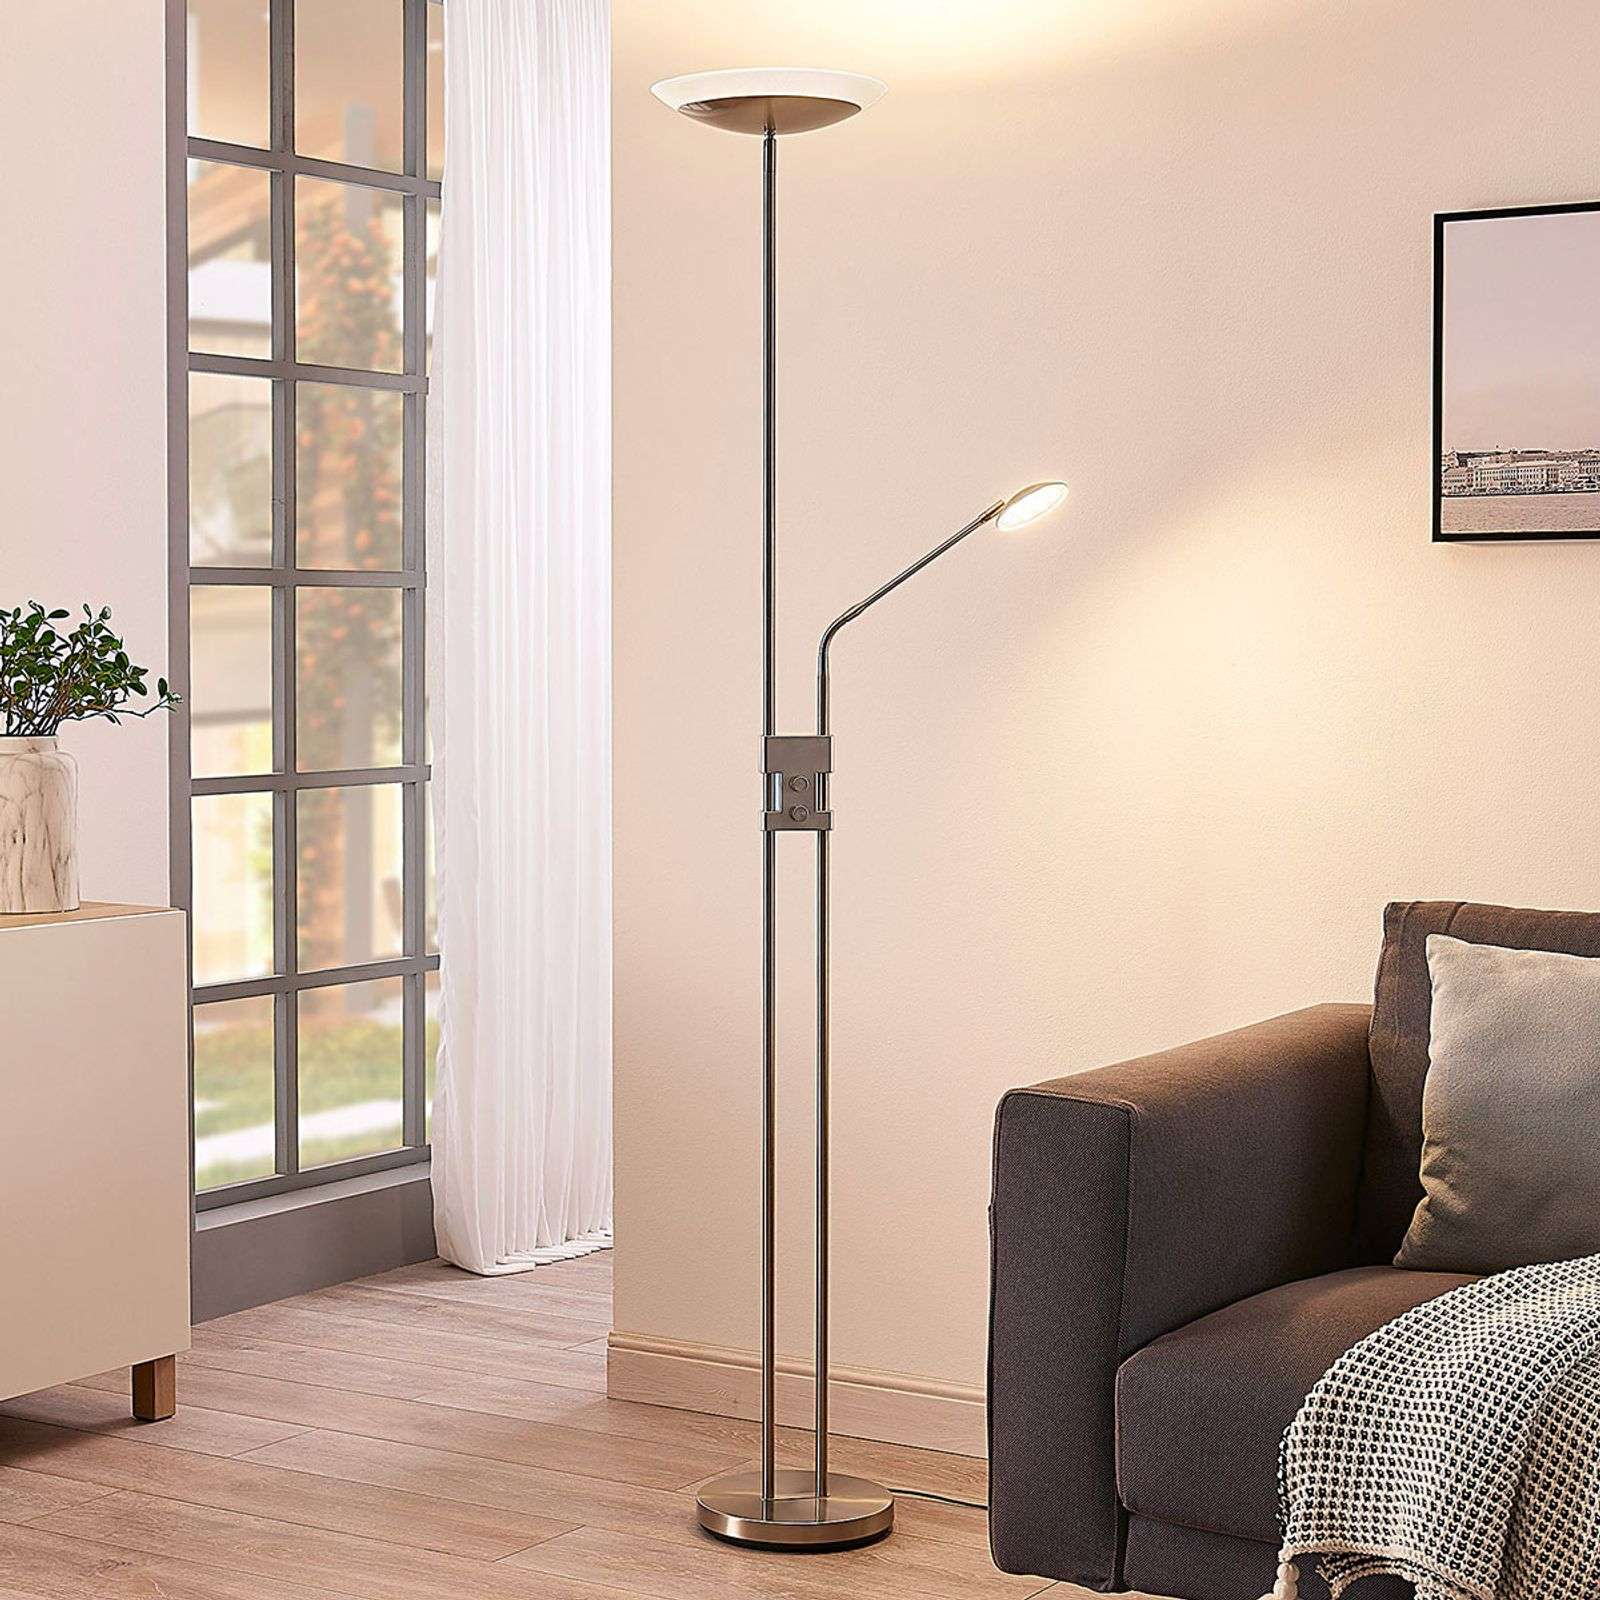 Lampadaire à éclairage indirect LED Jonne